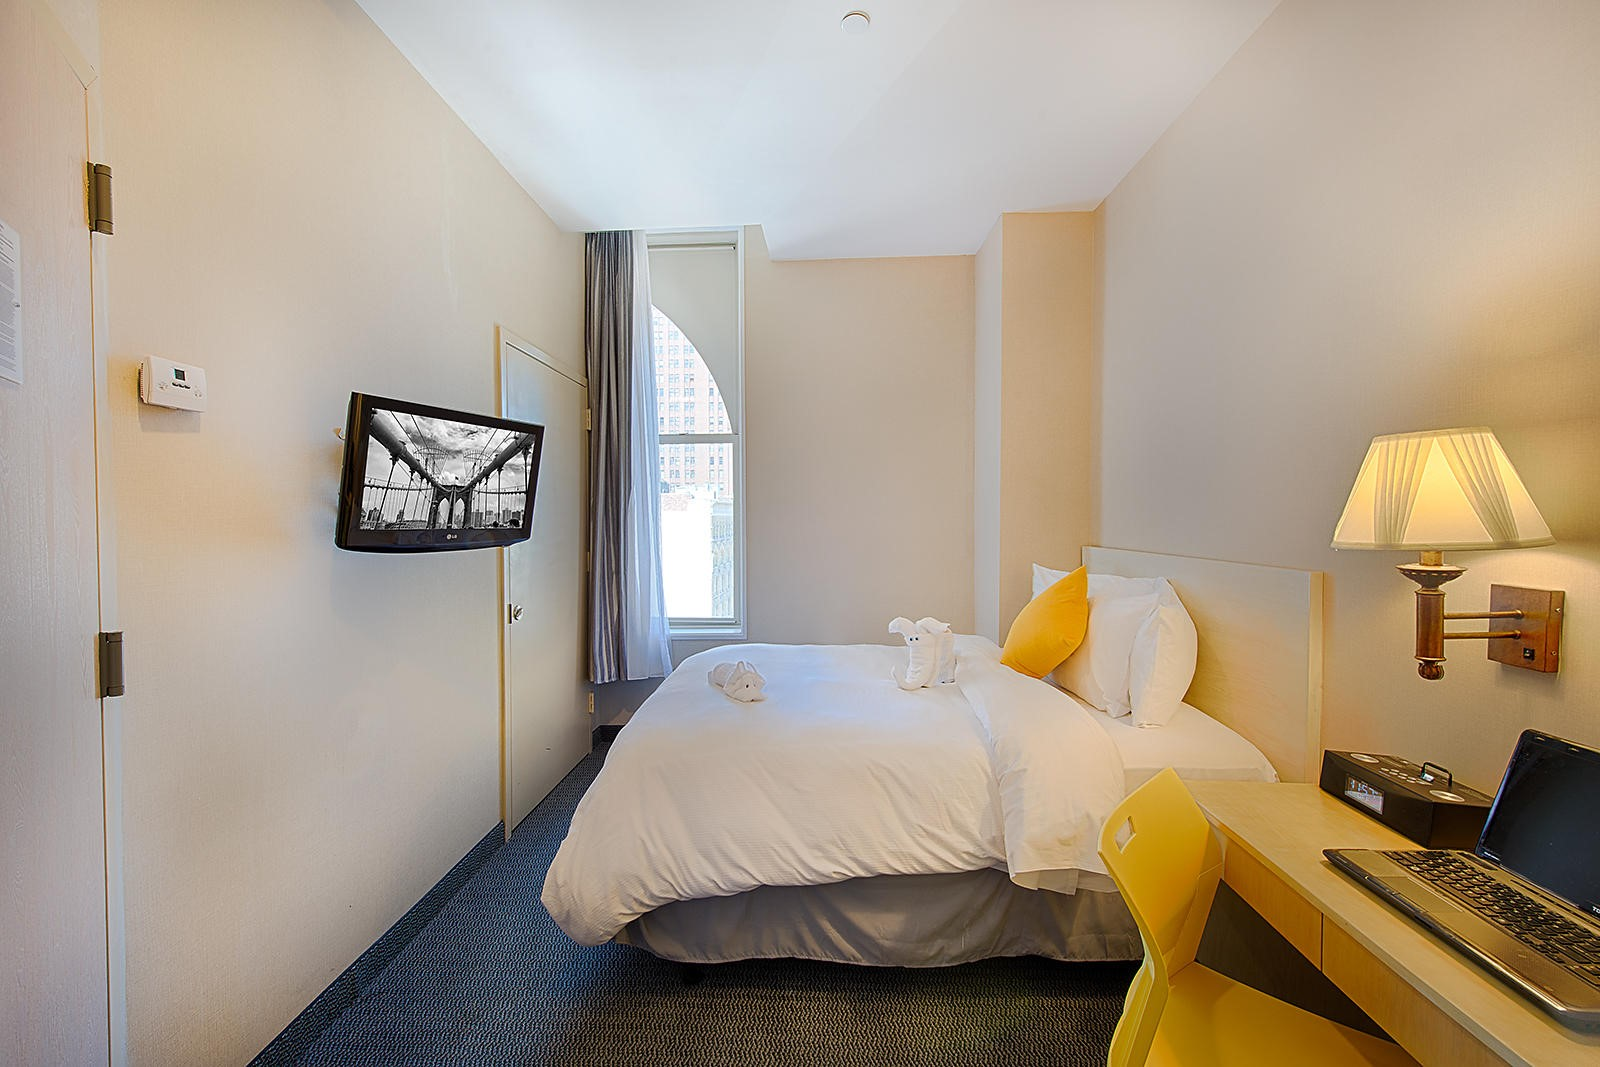 Where To Find Cheapest Hotels Cheapest Hotels In New York City Auto Car